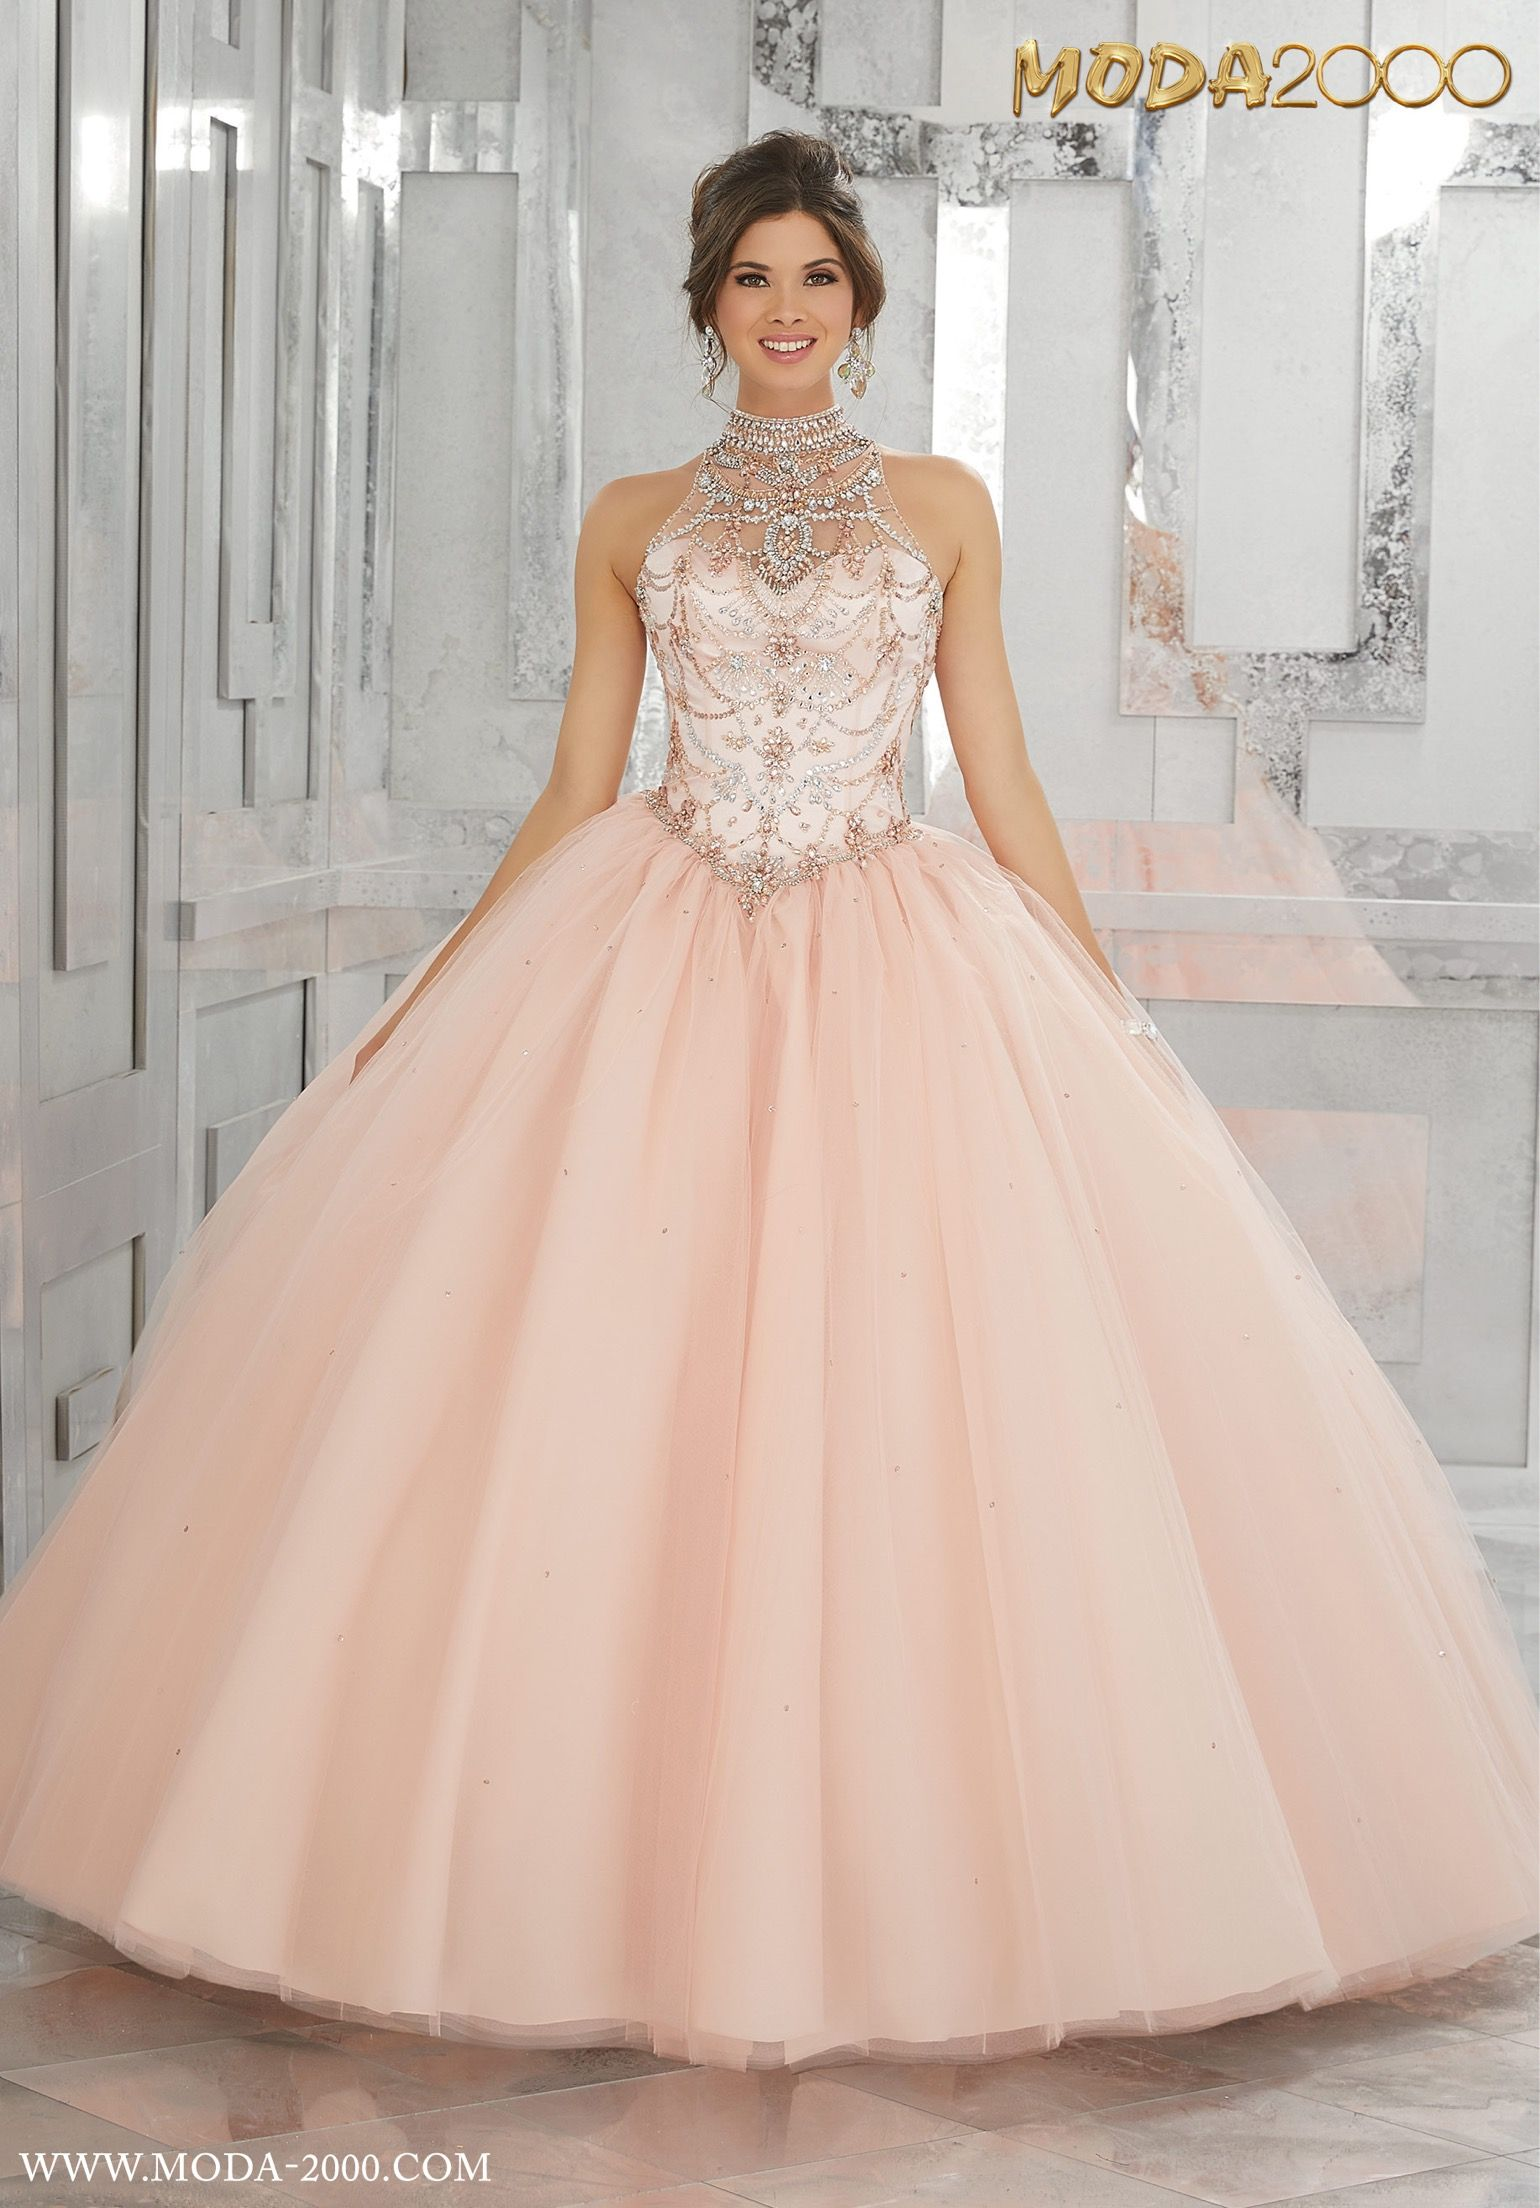 925194228bc ELEGANT BLUSH PINK HALTER QUINCEANERA DRESS! Follow us on instagram for  daily updates  moda 2000